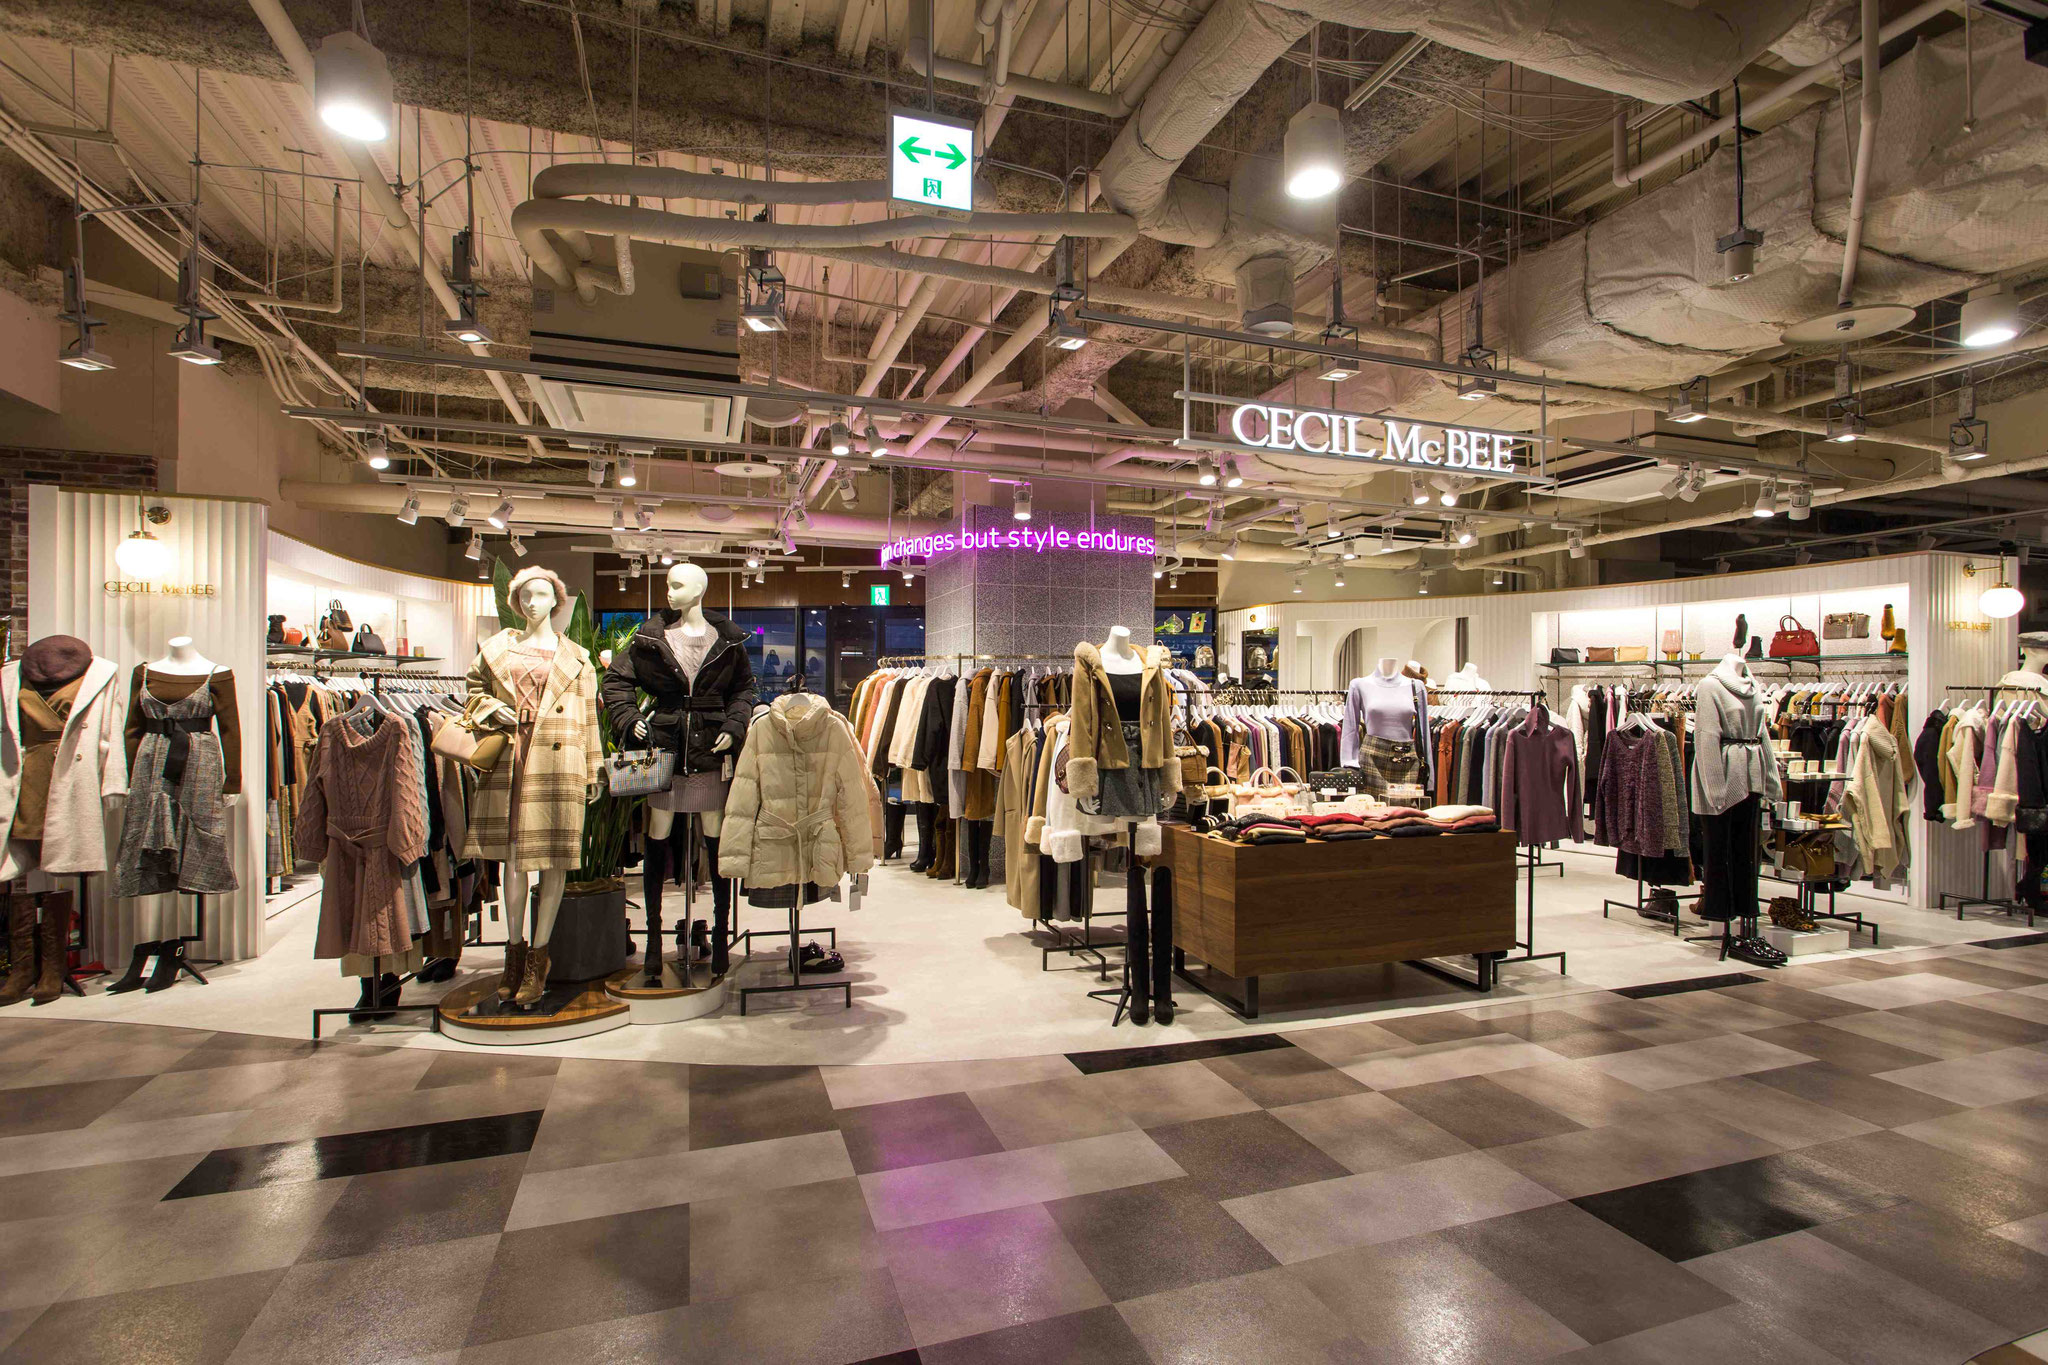 CECILMcBEE キャナルシティOPA店様【新装/施工】